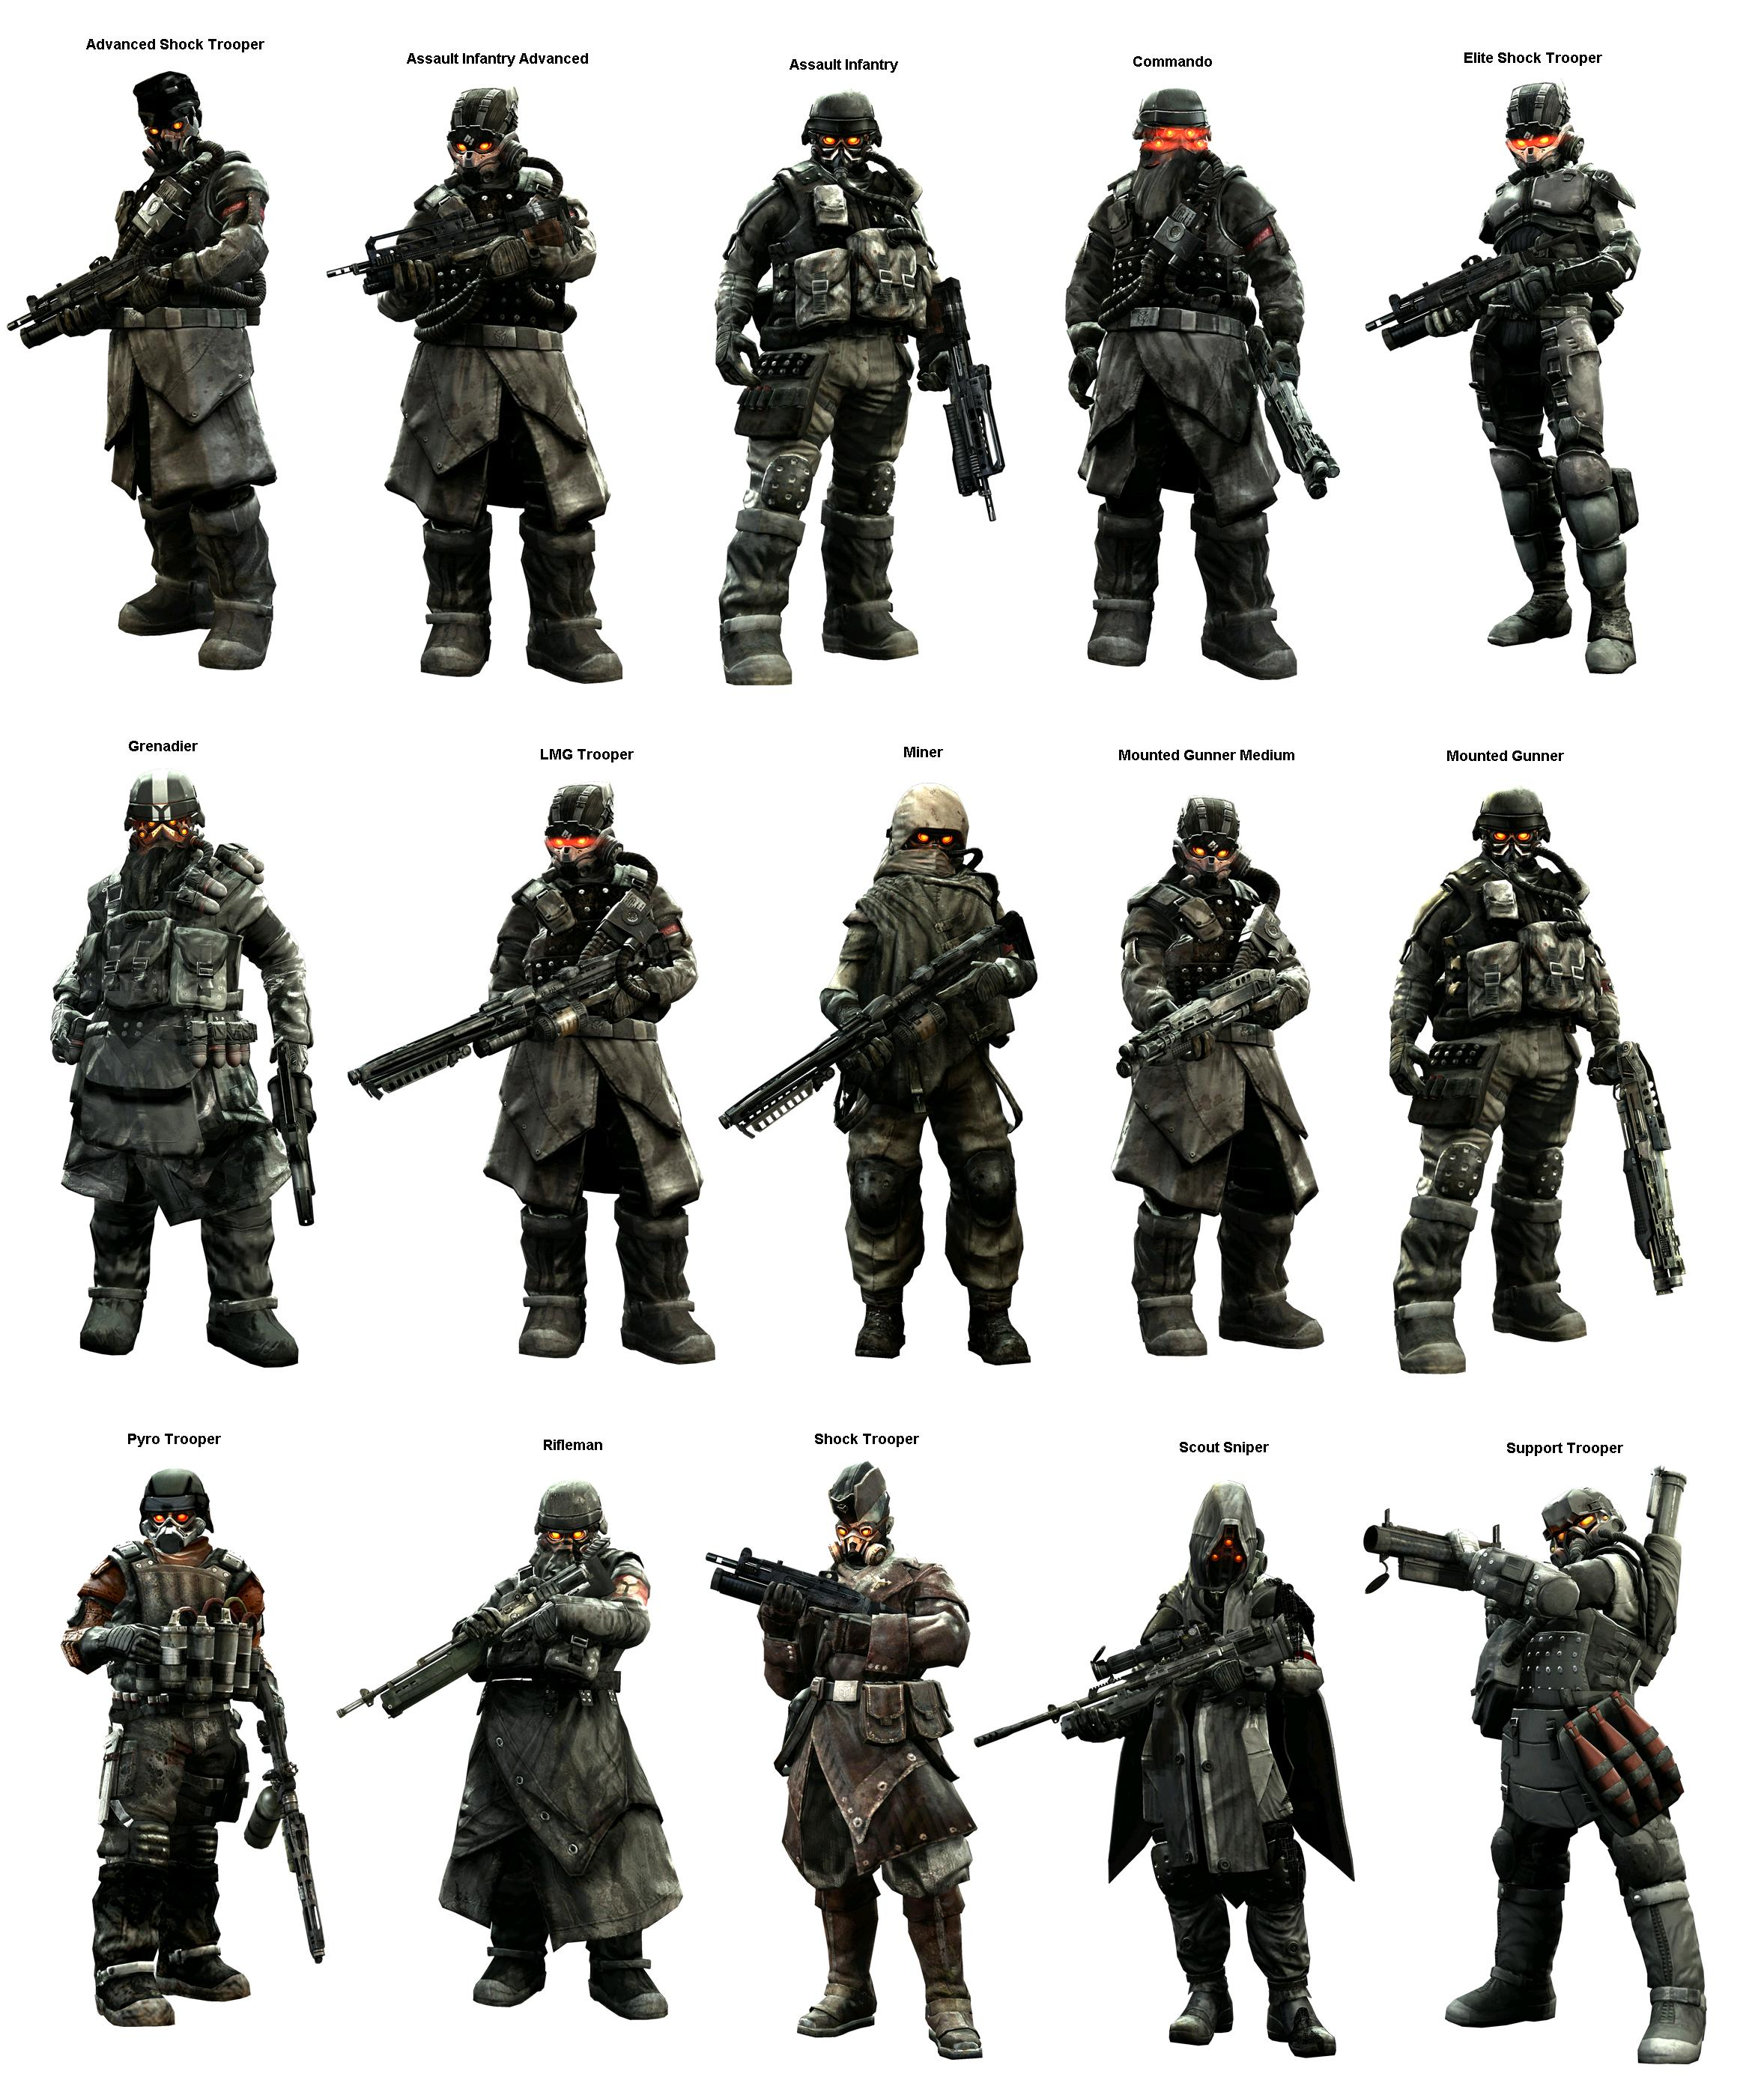 Helghasts Villains Wiki Fandom It is inspired by the killzone saga, one of my favorite sagas. helghasts villains wiki fandom